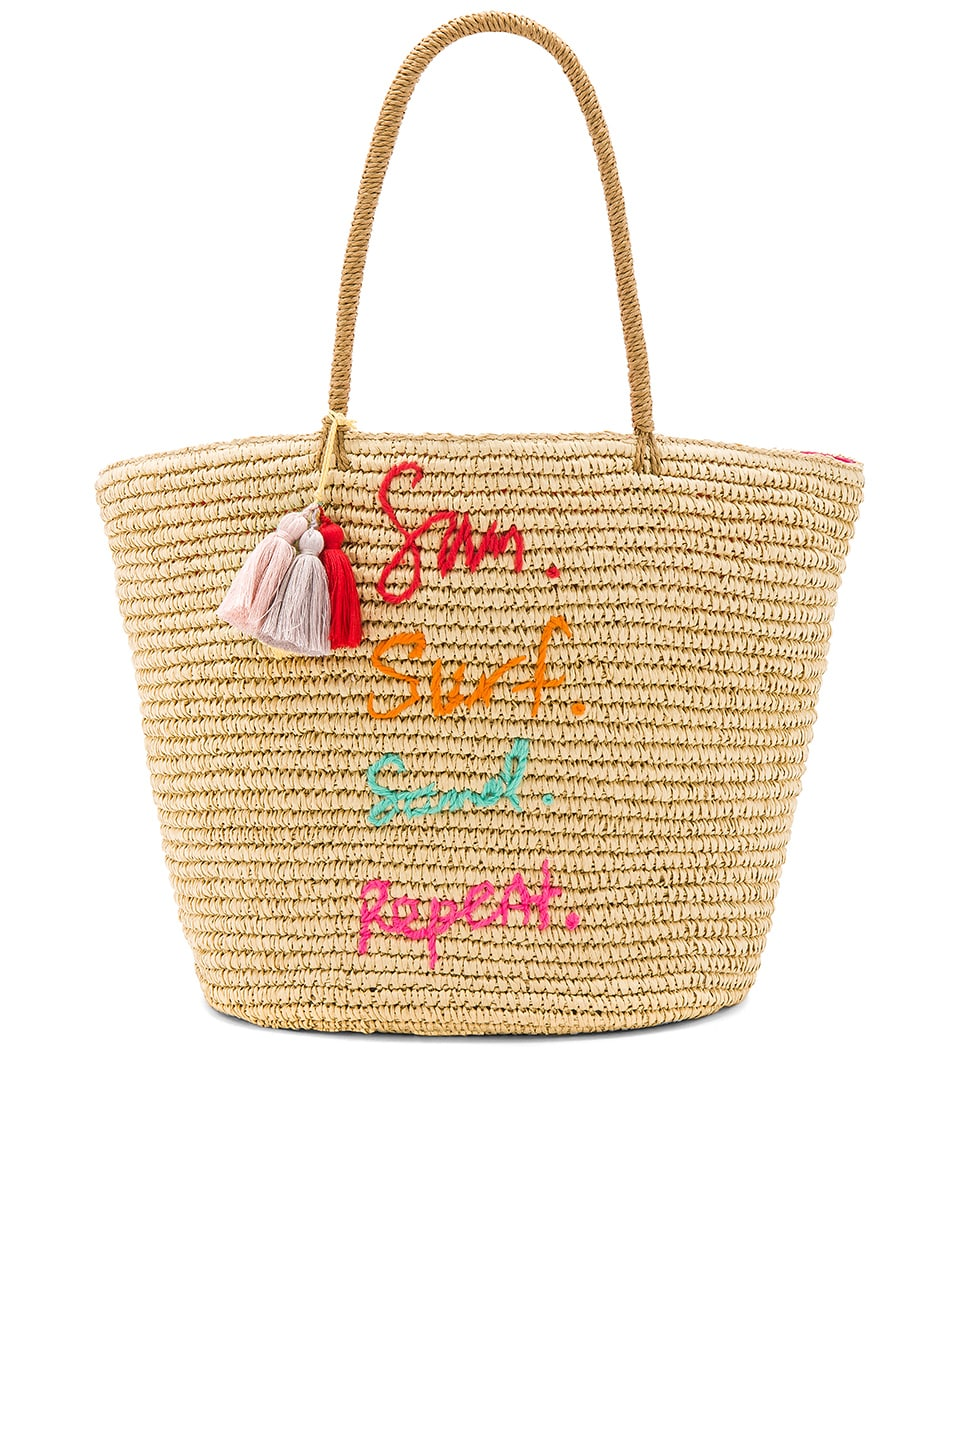 Rebecca Minkoff Sun Surf Sand Repeat Straw Tote in Natural